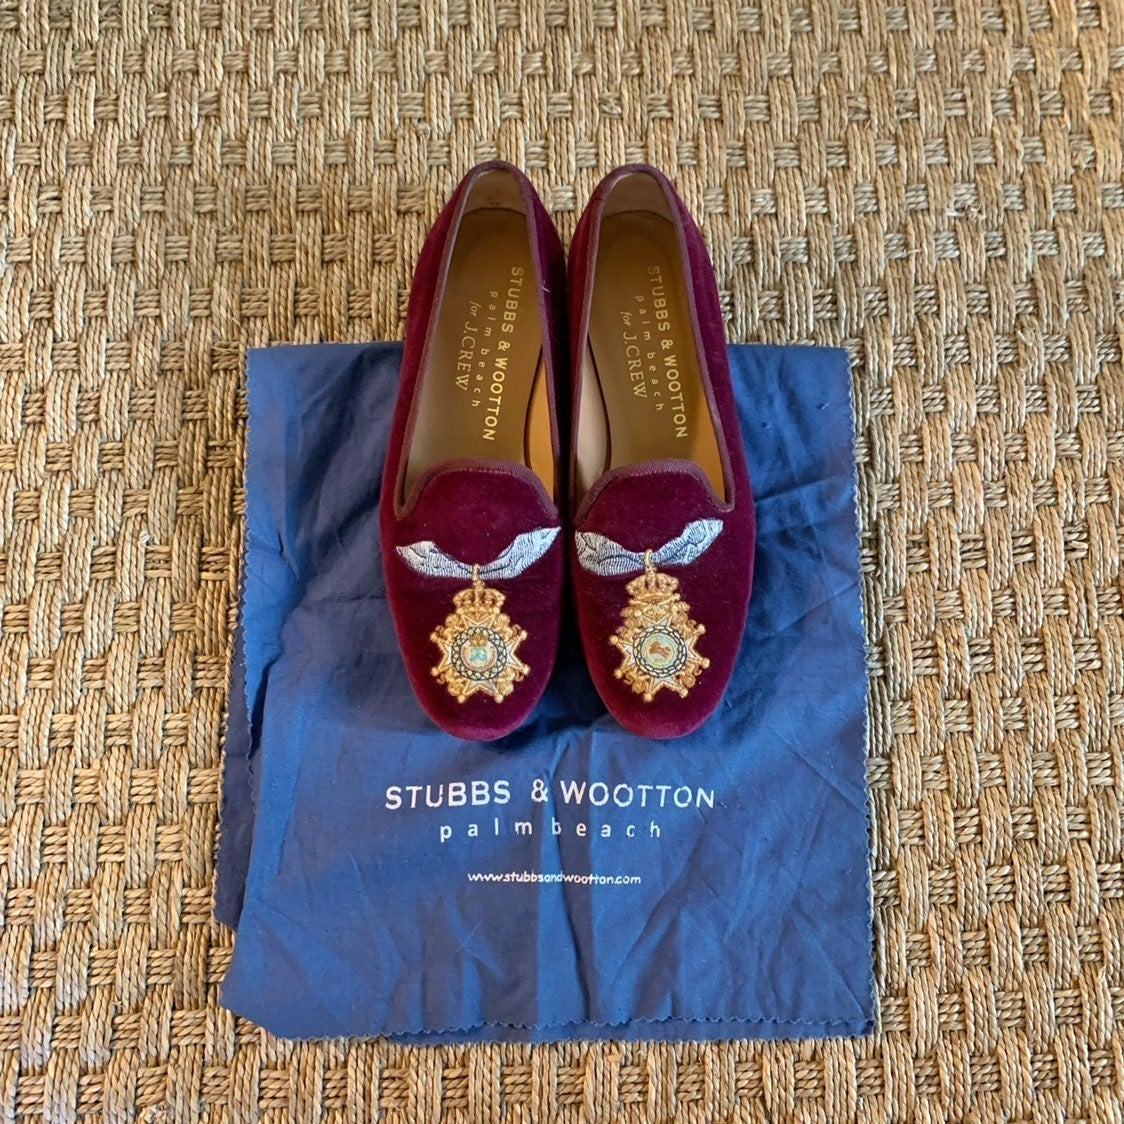 Stubbs & Wootton for J. Crew loafers